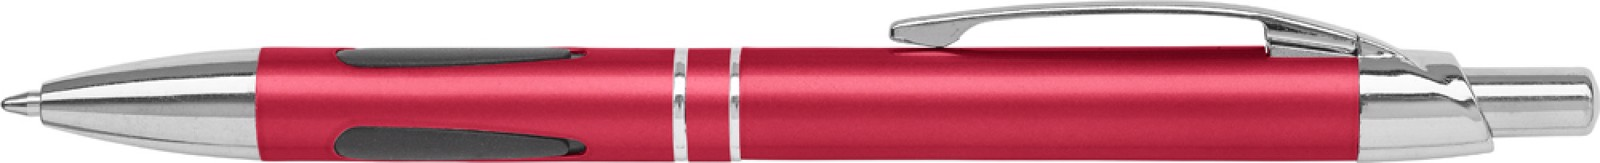 ABS ballpen with rubber grip pads - Red